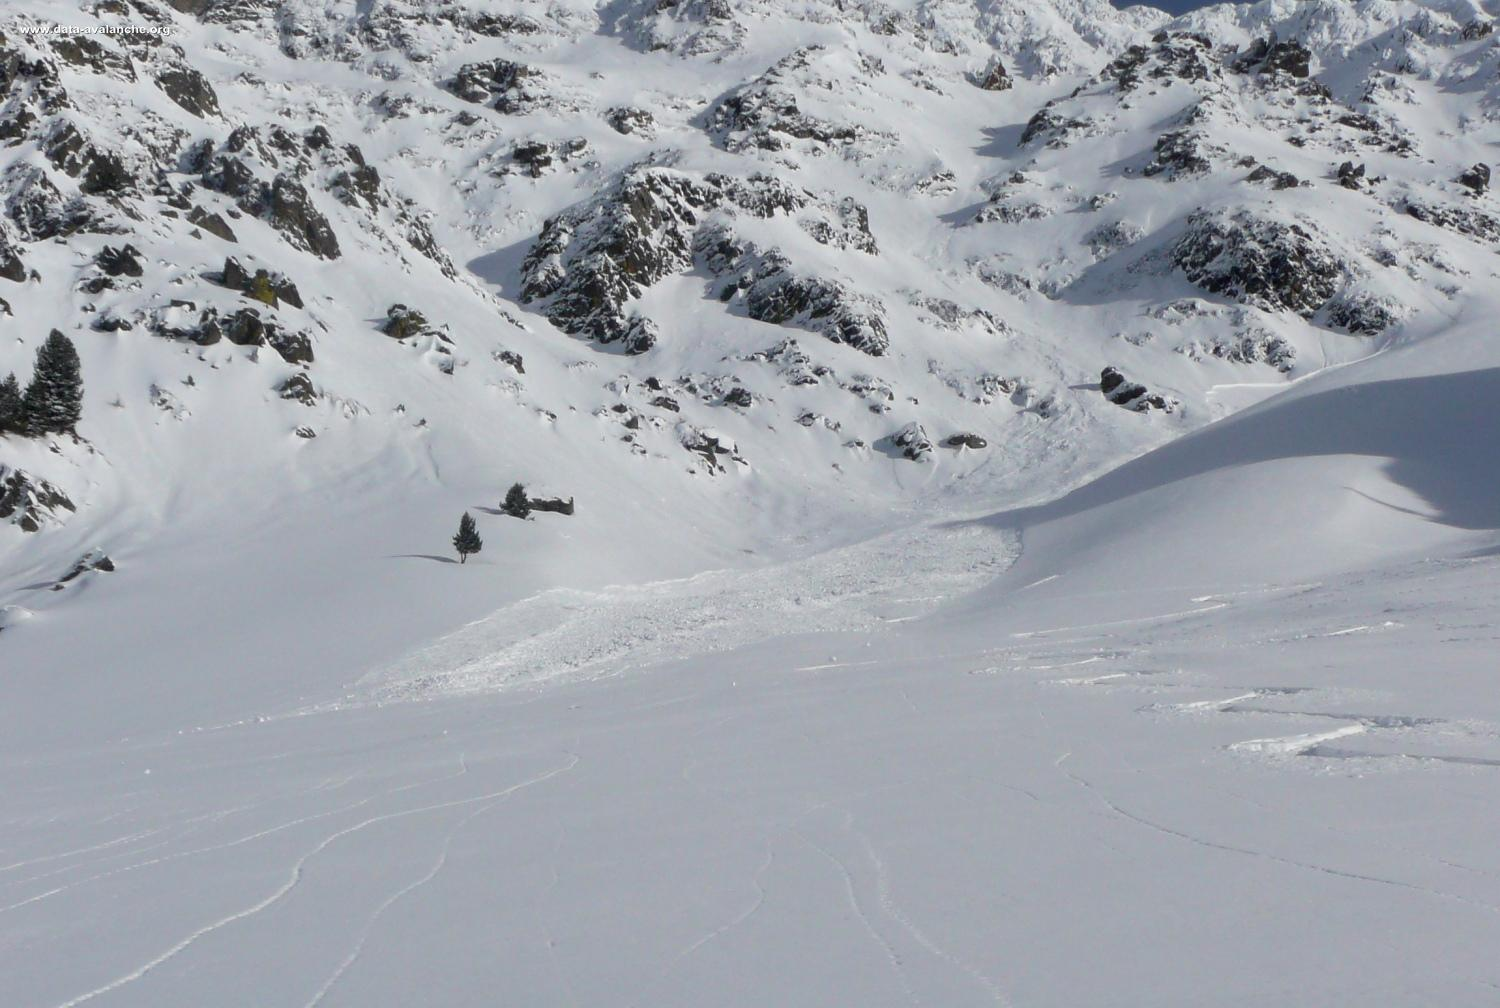 Avalanche Oisans, secteur Lavaldens, Vallon Guillaume - Photo 1